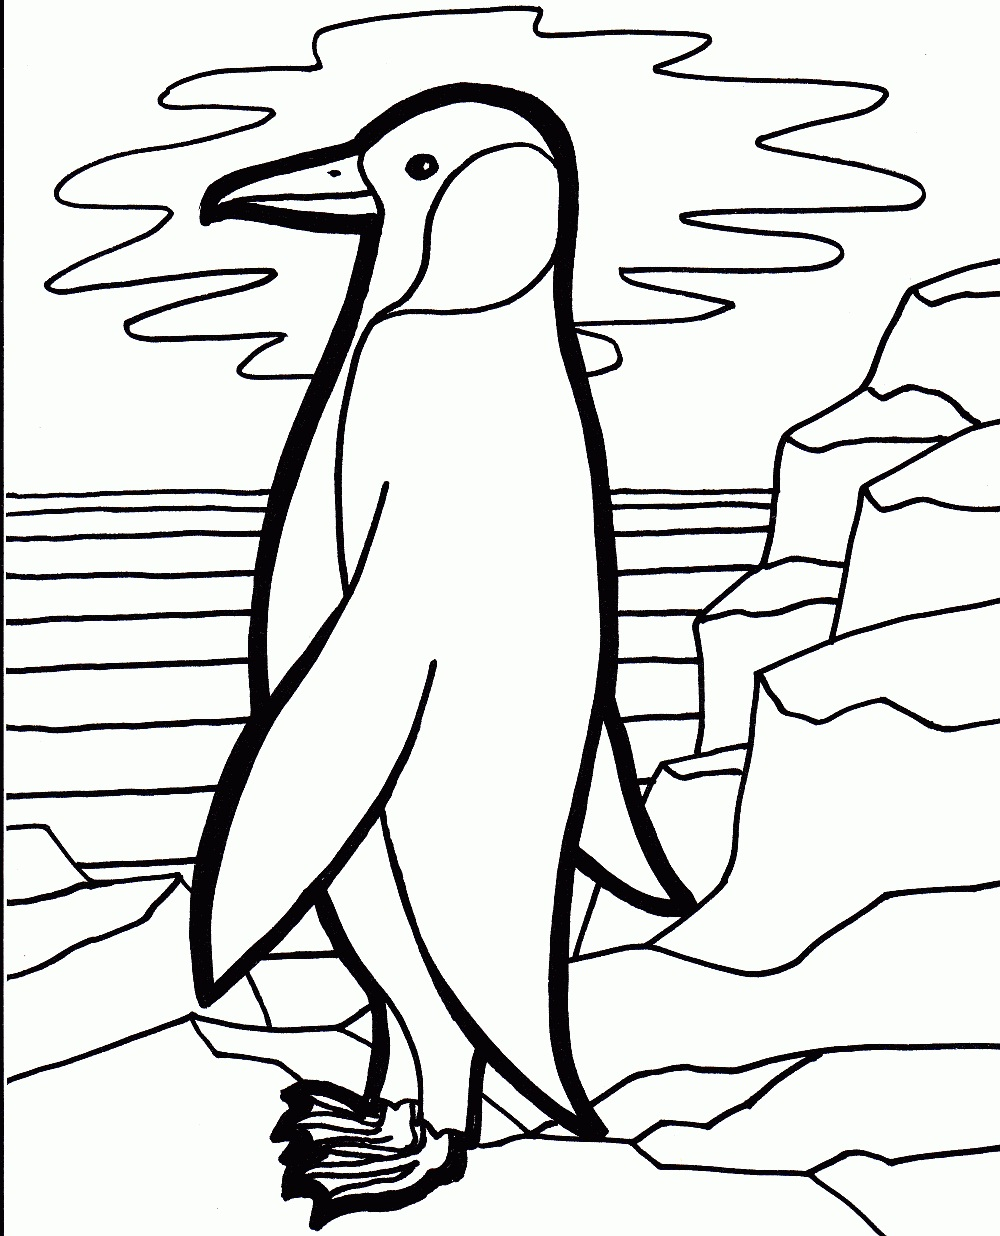 coloring pages penguin - free printable penguin coloring pages for kids animal place